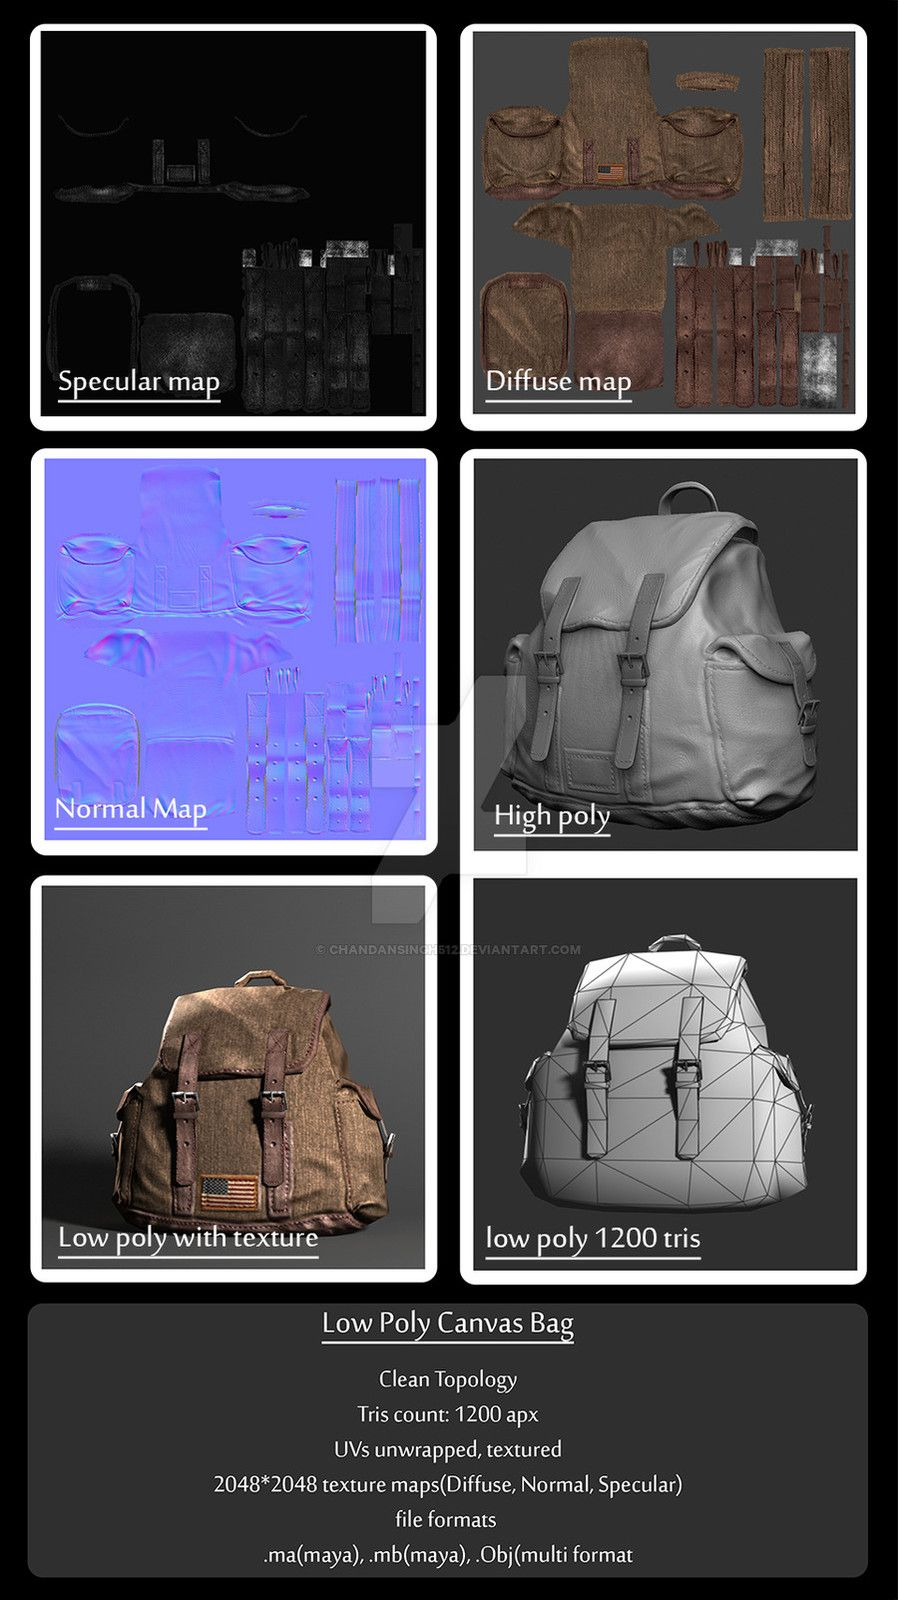 low_poly_canvas_bag, Chandan Singh on ArtStation at https://www.artstation.com/artwork/kwwz6